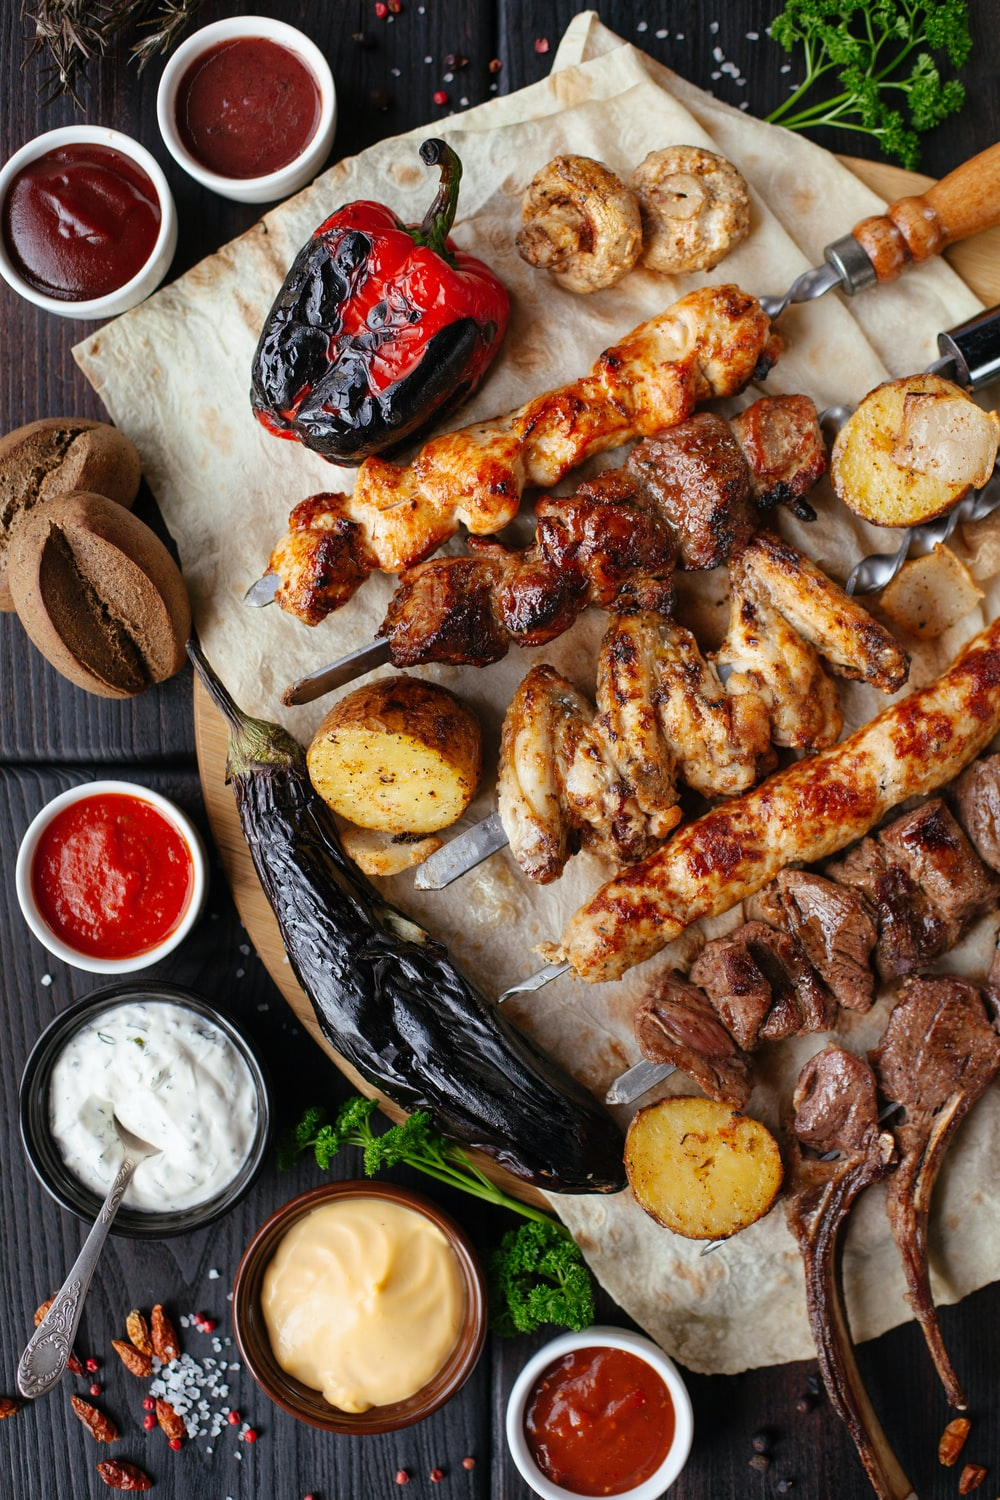 grilled meat and vegetable on the table